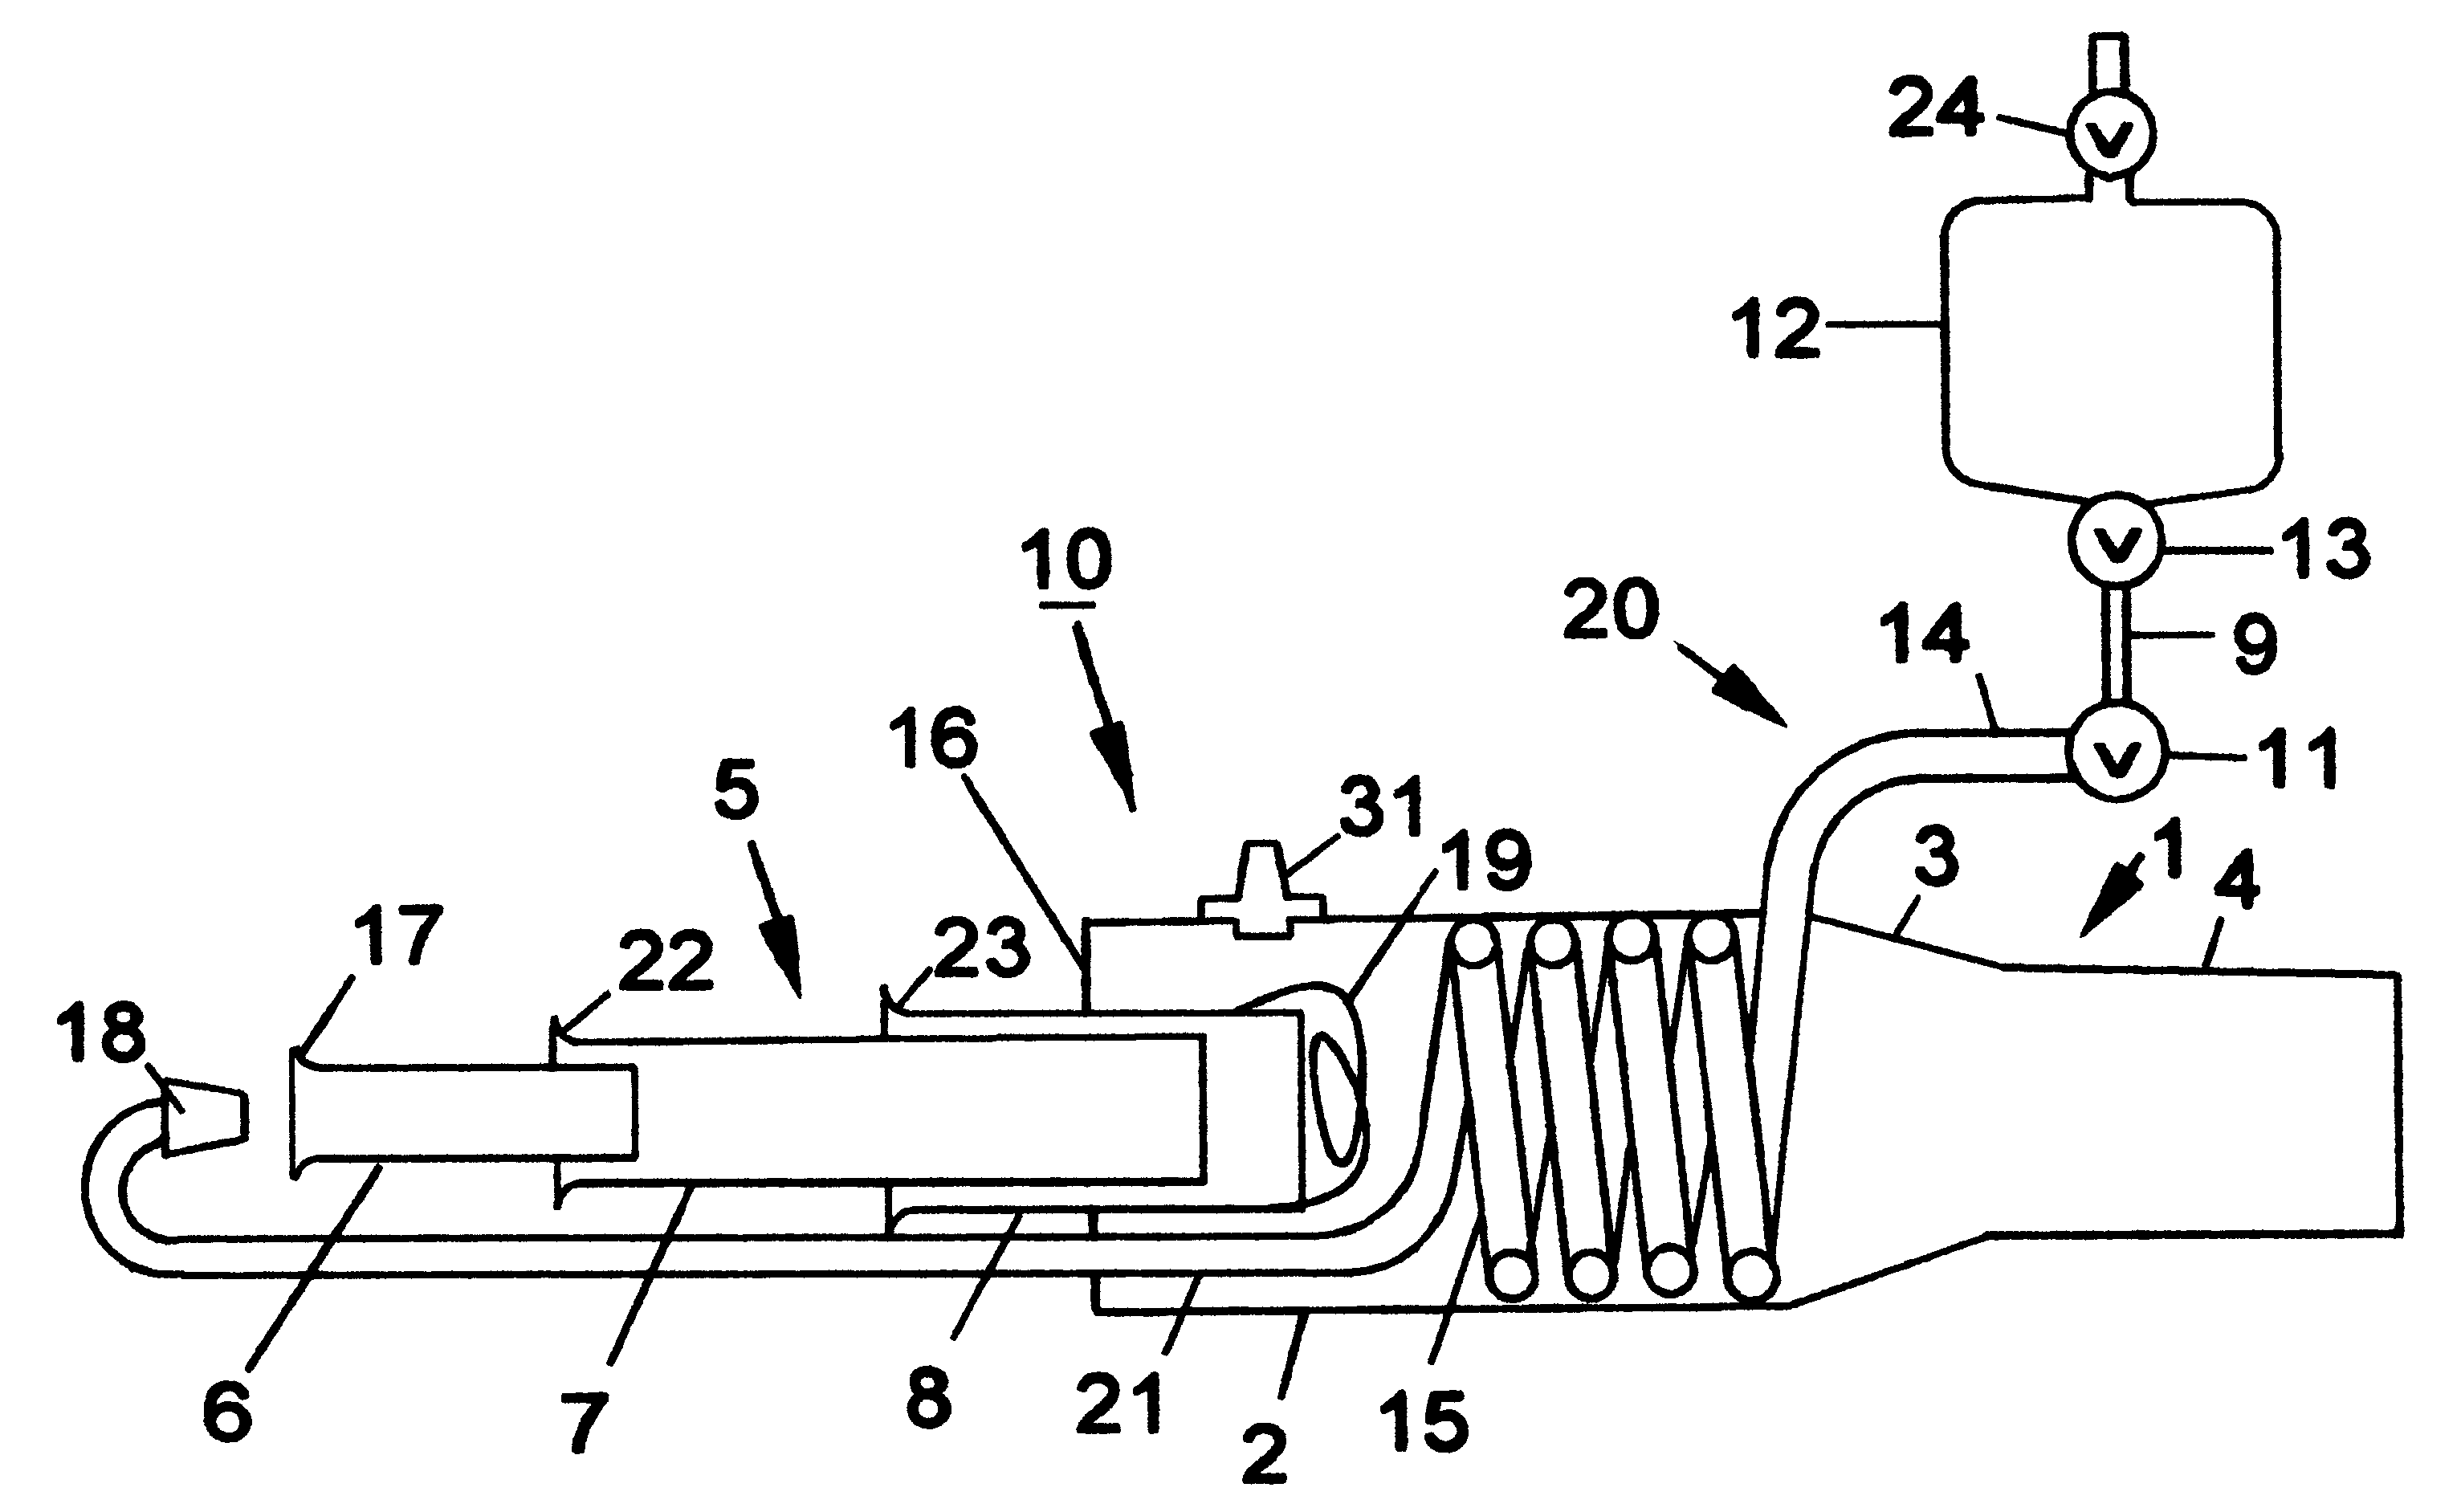 patent us6216446 - valveless pulse-jet engine with forward facing intake duct